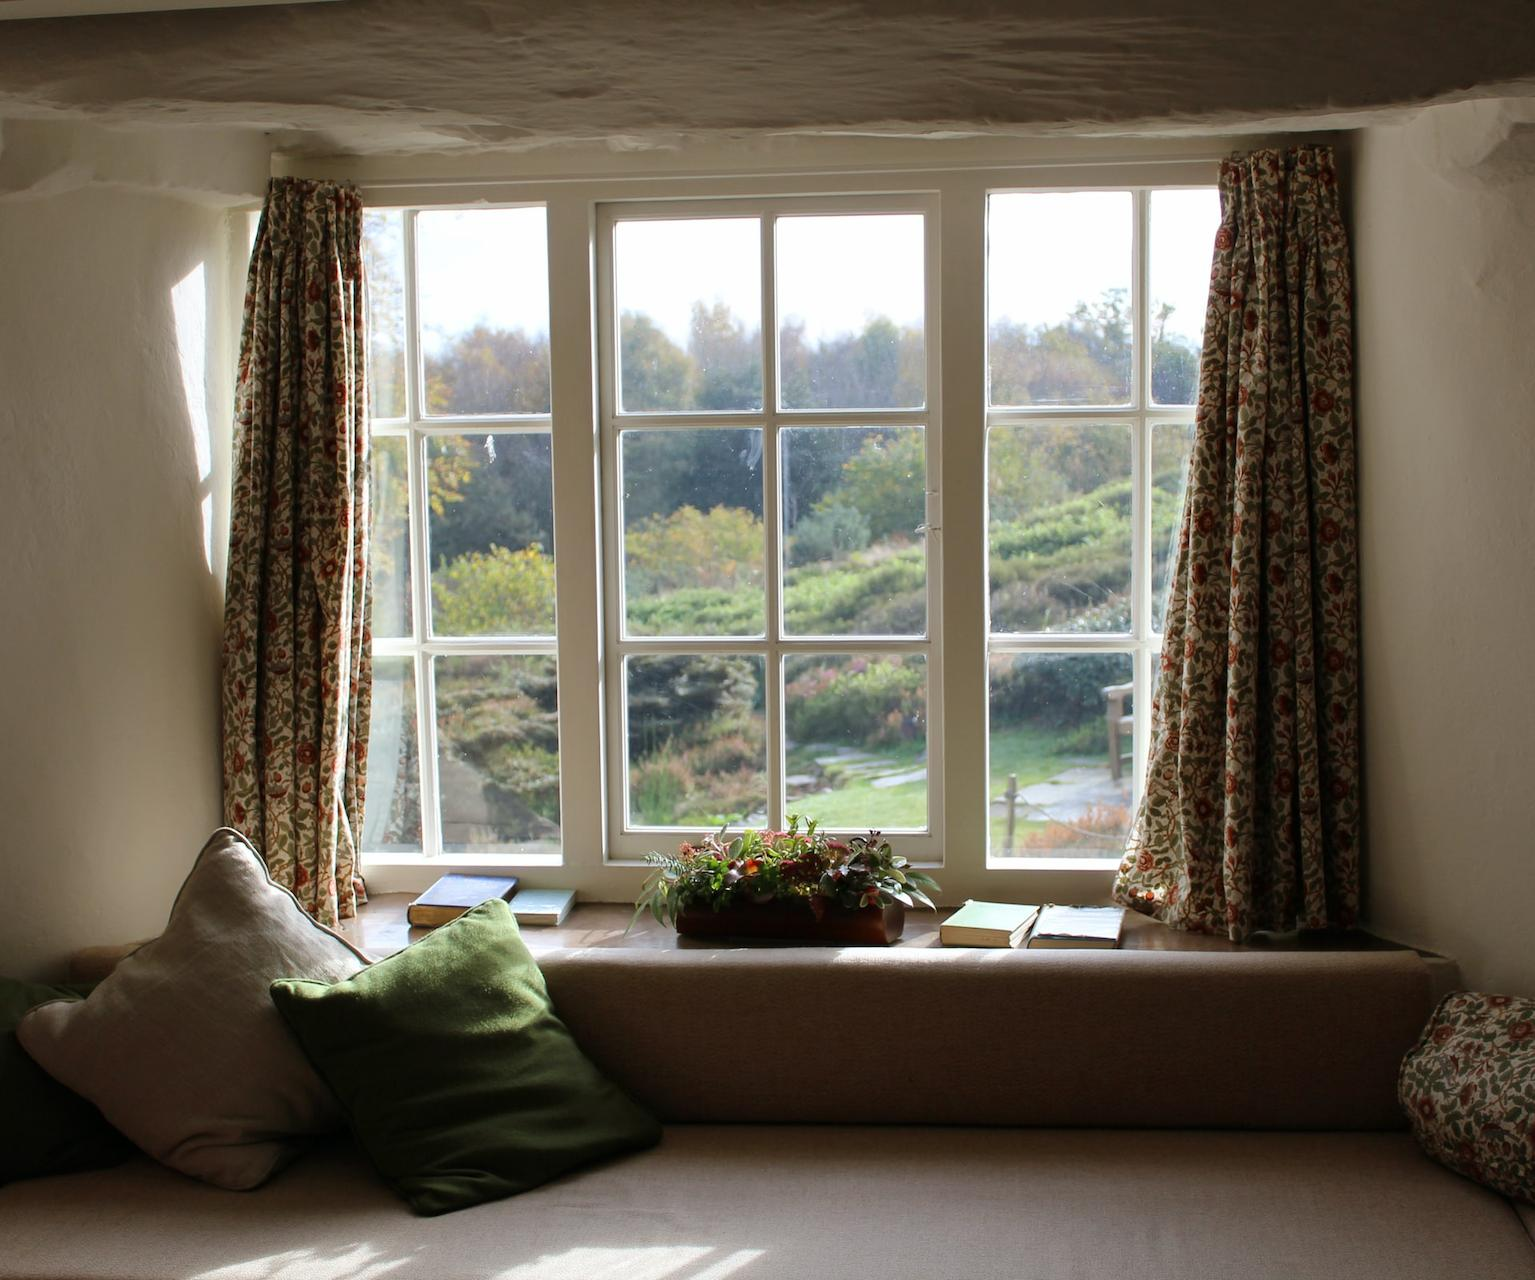 How To Get The Best Double-Glazing Company?